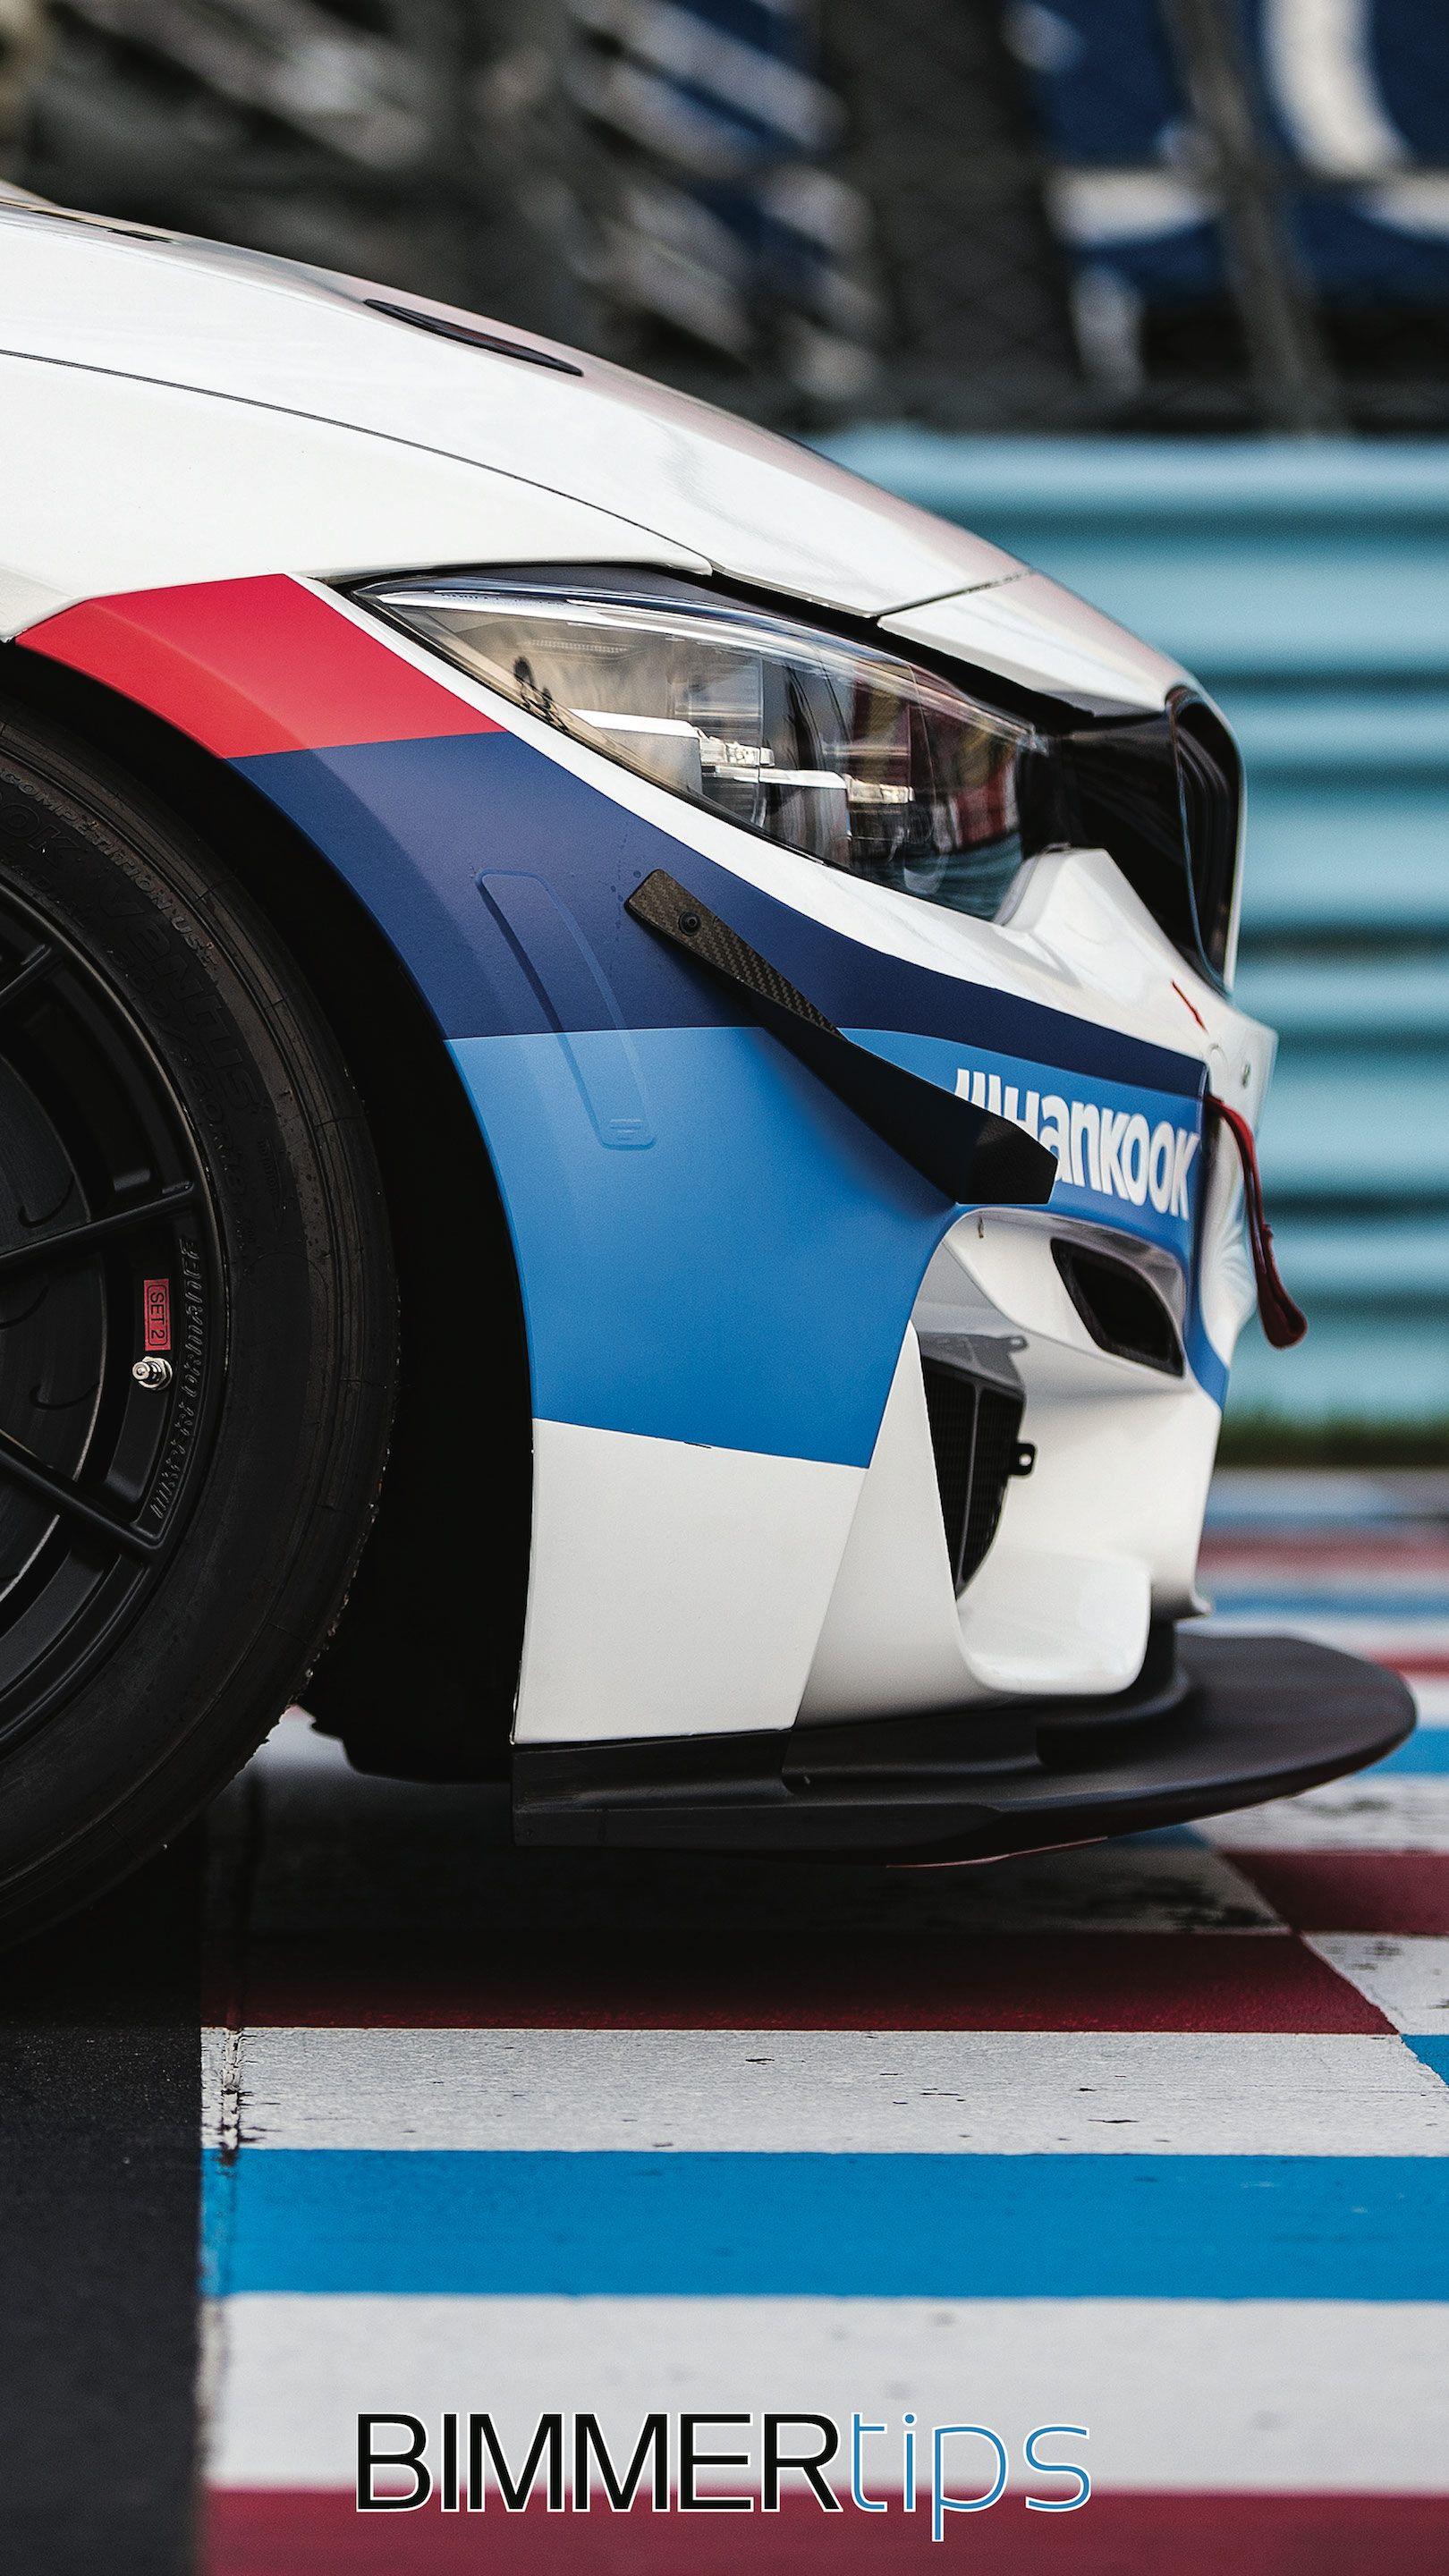 Bmw Wallpapers For Iphone And Android Smartphones Bimmertips Com Fond D Ecran Bmw Voiture Bmw Bmw